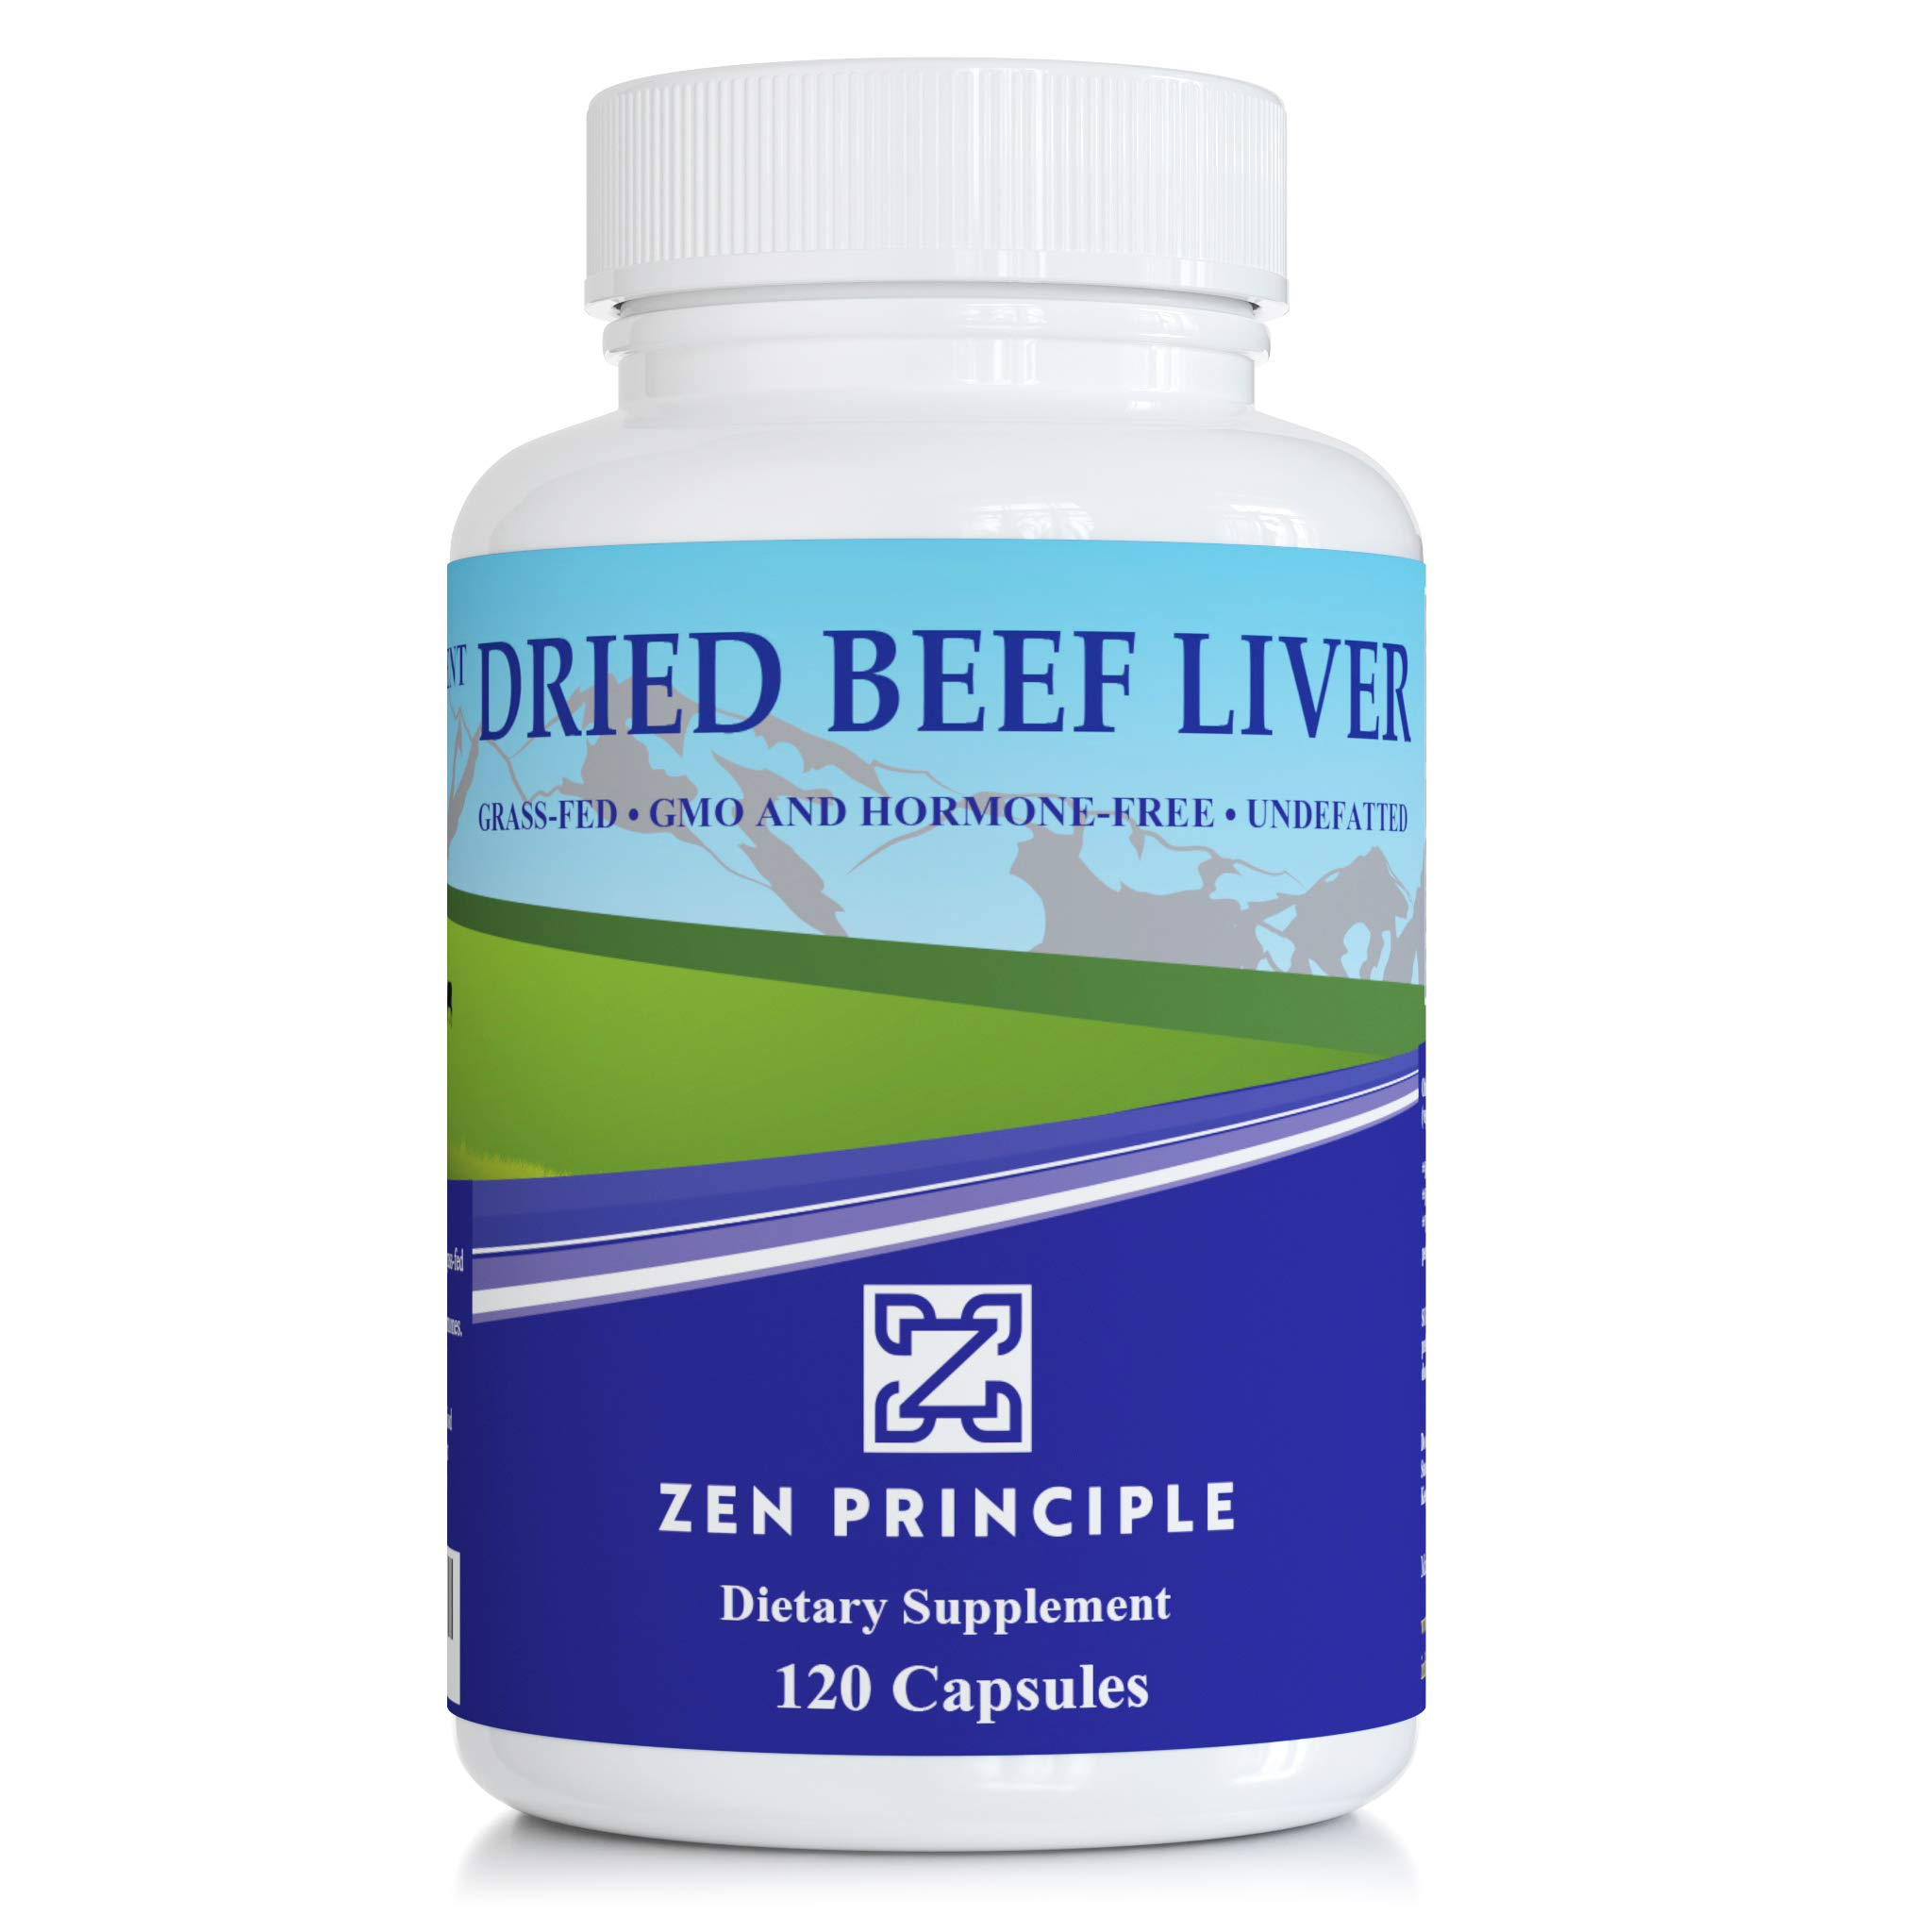 Ultra-Pure Desiccated Beef Liver, Grass-Fed, Pasture-Raised Cows. No Hormones or GMO. Natural Energy and Workout Boost from Iron, Amino Acids, Protein and Vitamins. 120 Capsules 750 Mg. by Zen Principle